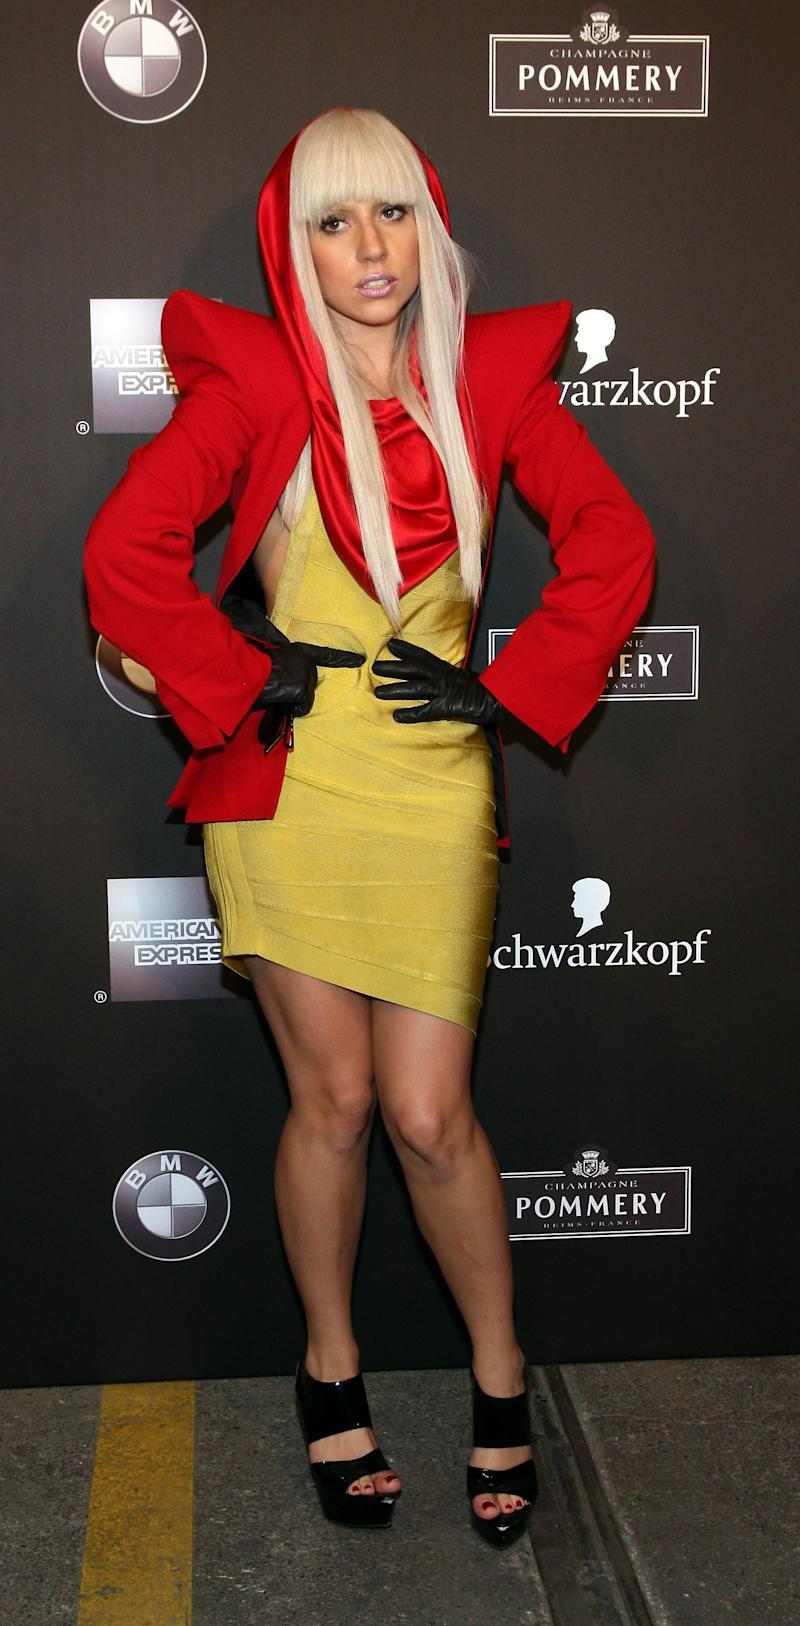 Lady Gaga at a Fashion Week event in 2008, complete with towering shoulder pads and signature snood.